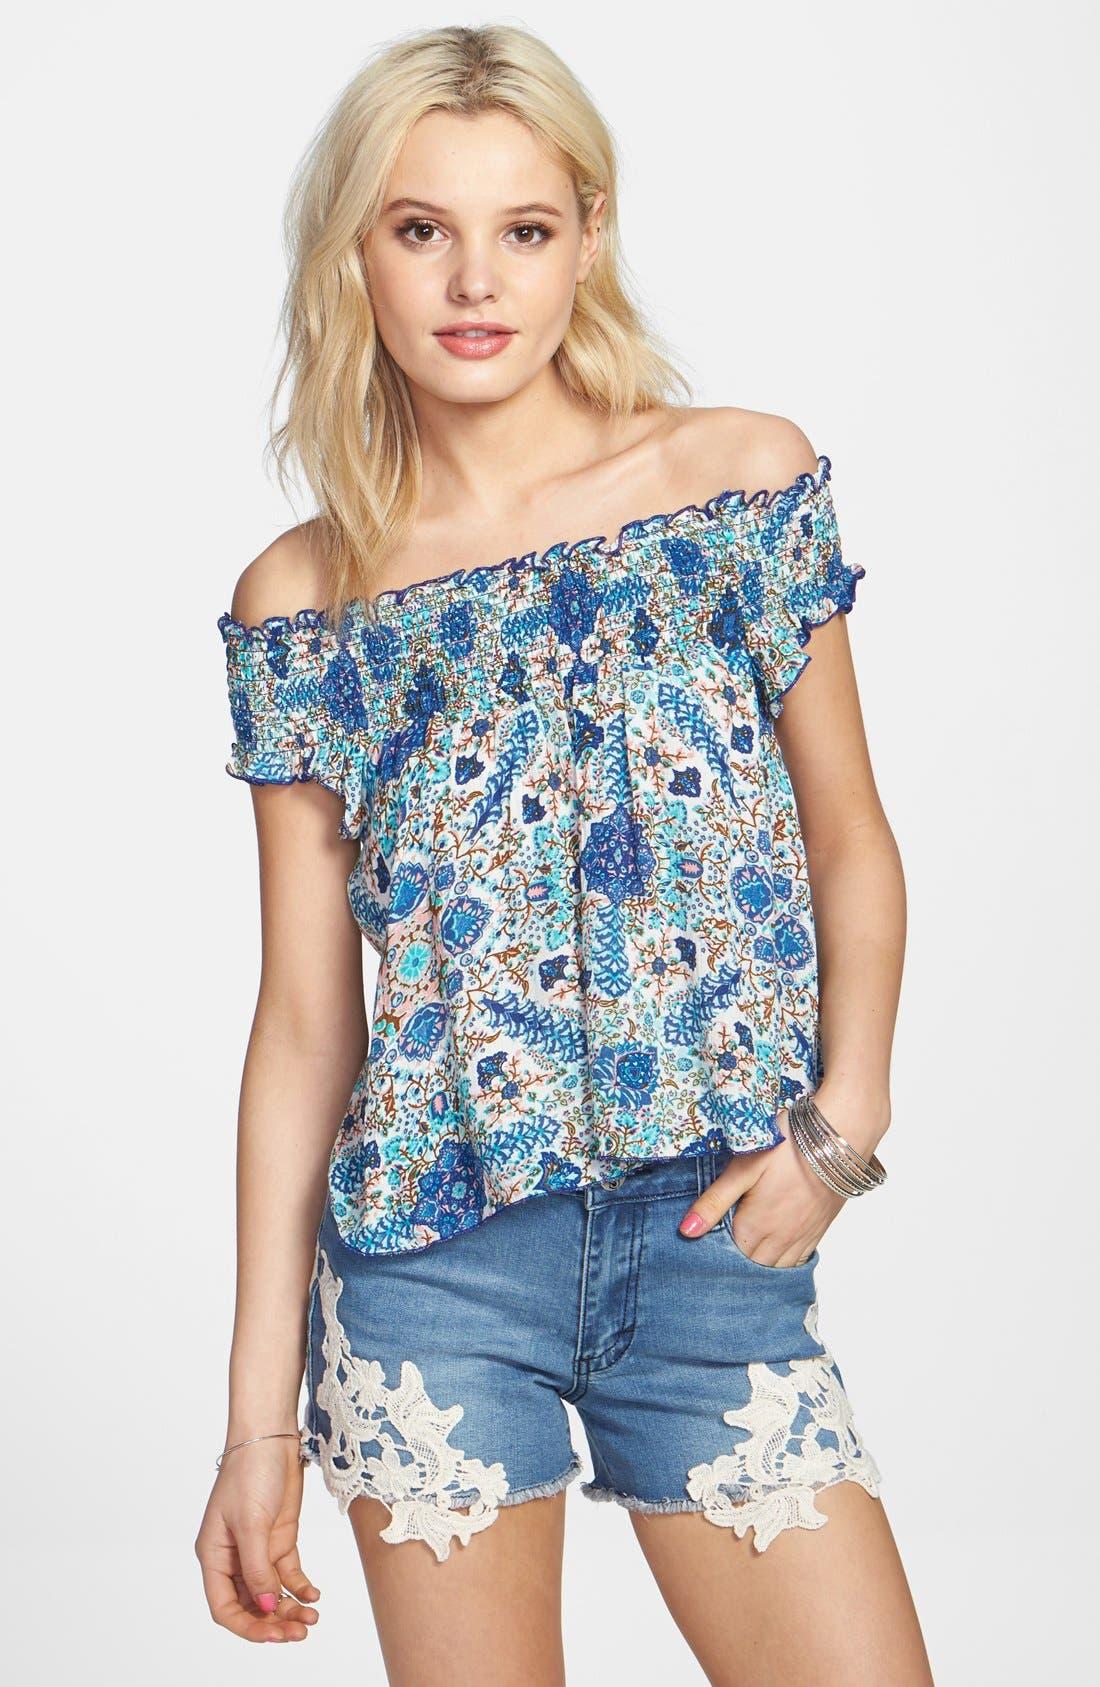 Alternate Image 1 Selected - Band of Gypsies Floral Print Smocked Off-the-Shoulder Top (Juniors)